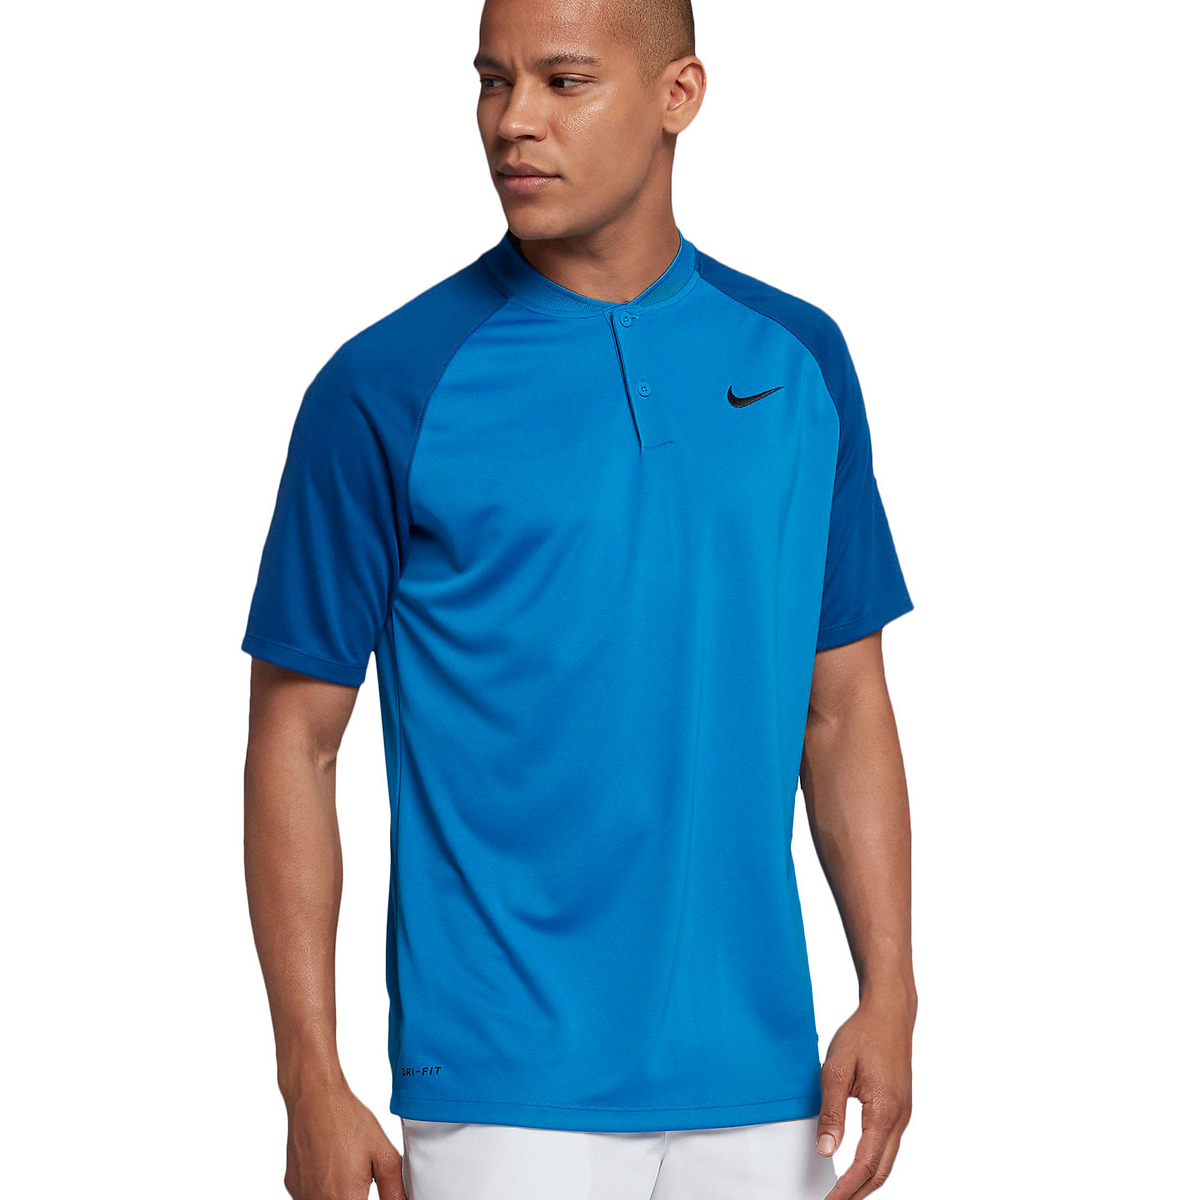 Nike Golf Dry Momentum Polo Shirt From American Golf